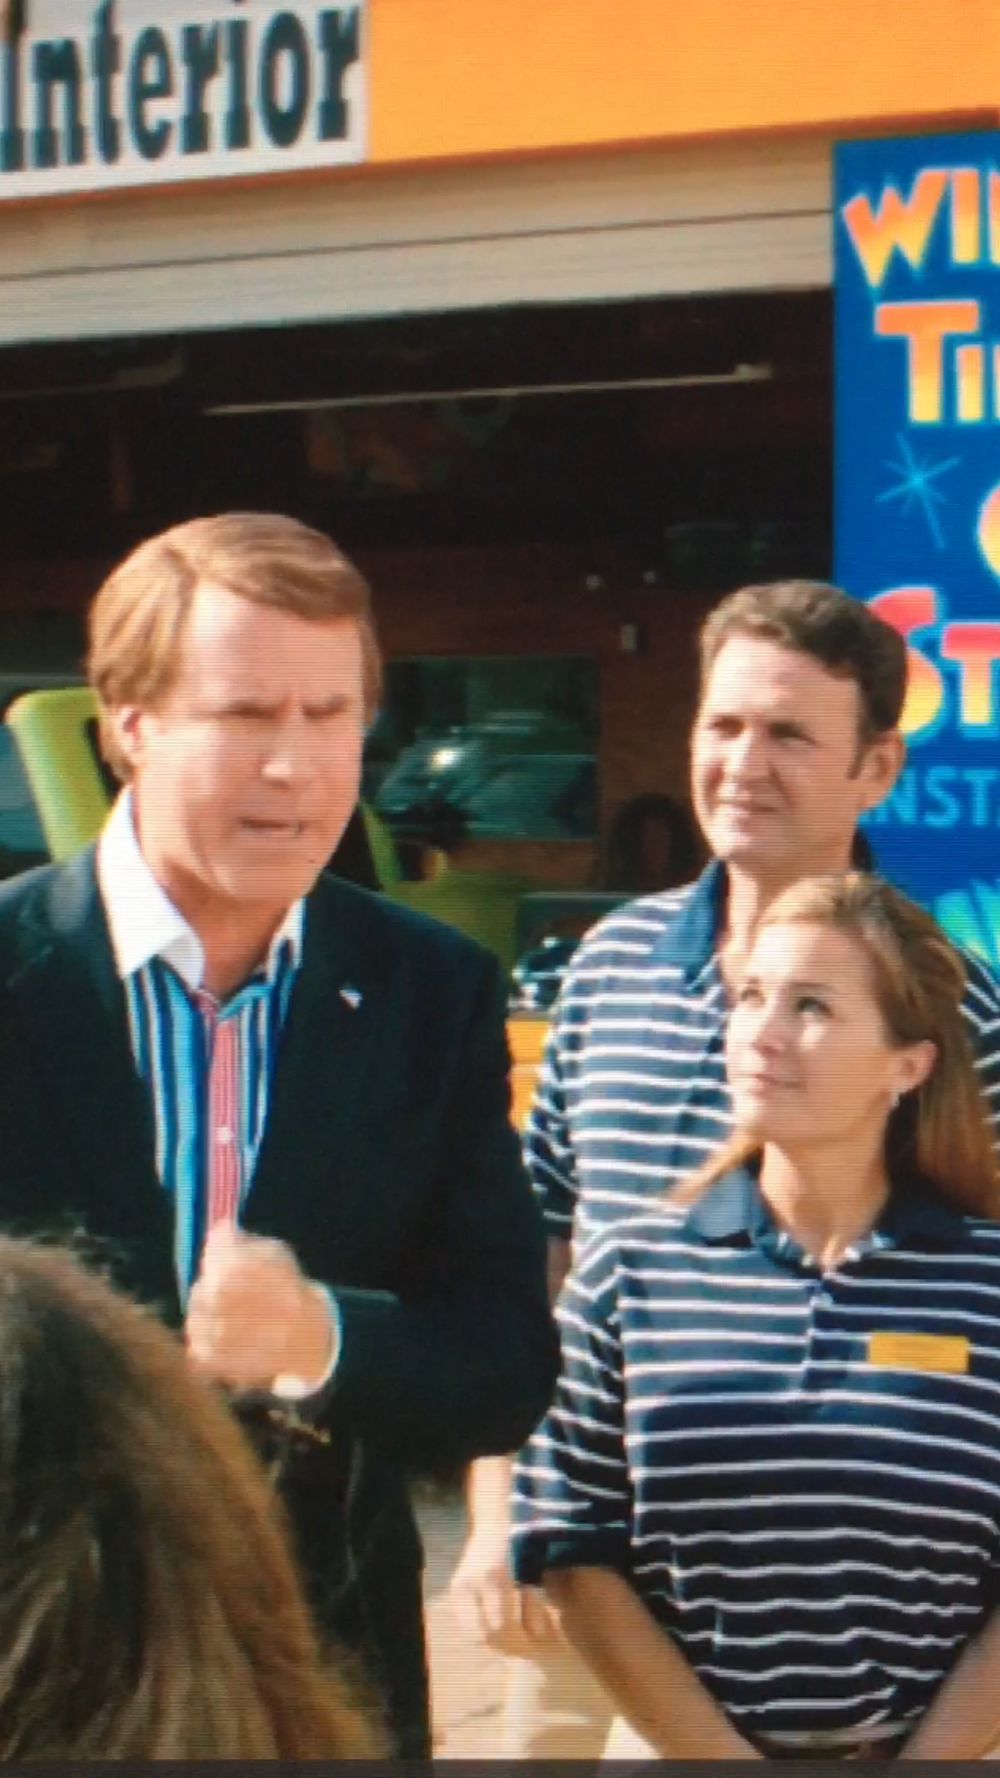 read what will ferrell taught me about making Facebook ads (my super short acting Moment)